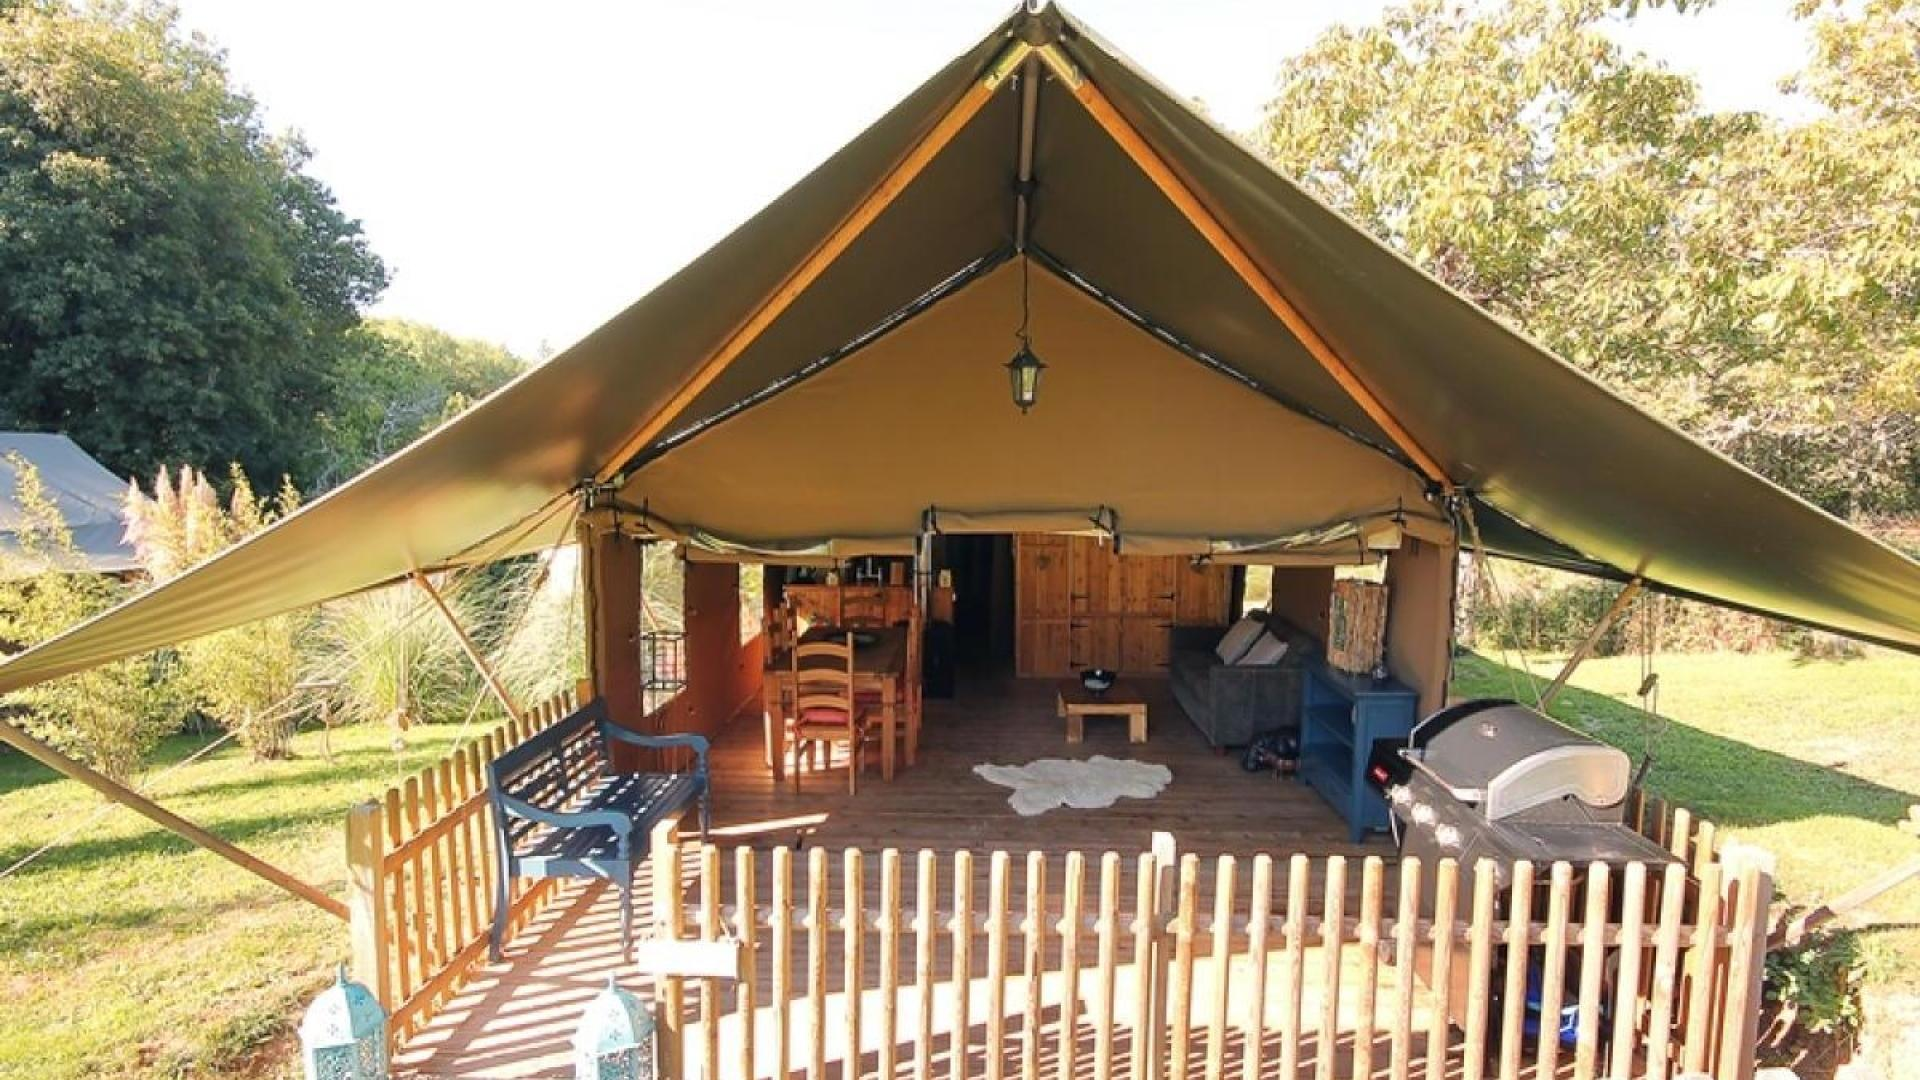 3 Bedroom Glamping/Tent in Midi-Pyrenees, France